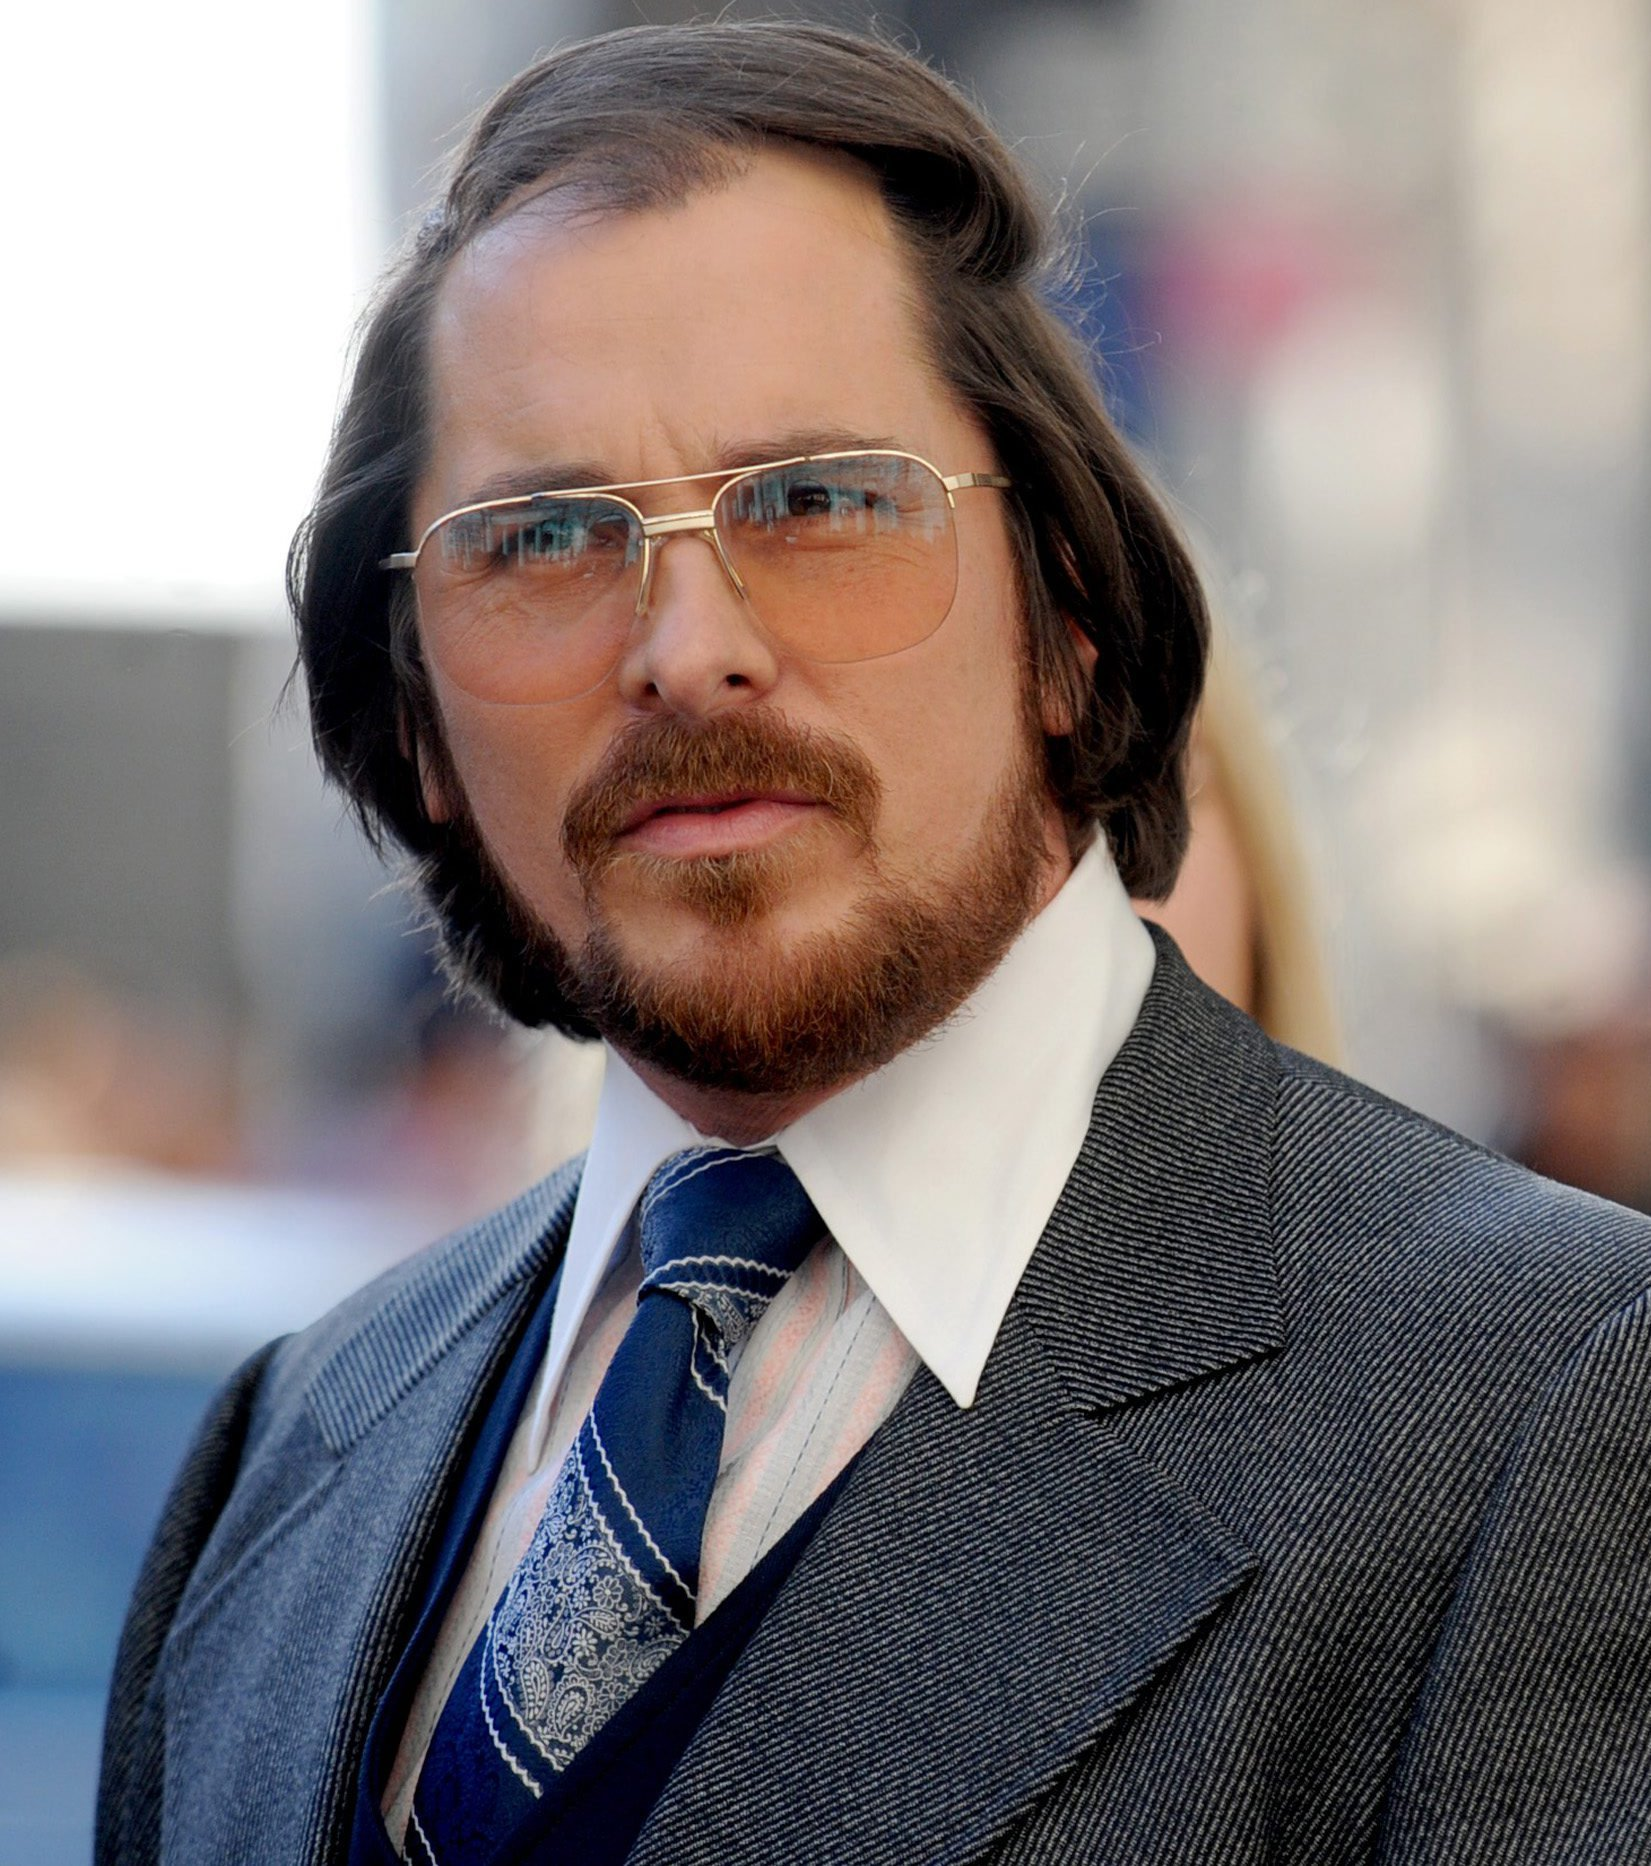 1000+ images about Christian Bale on Pinterest Christian Bale